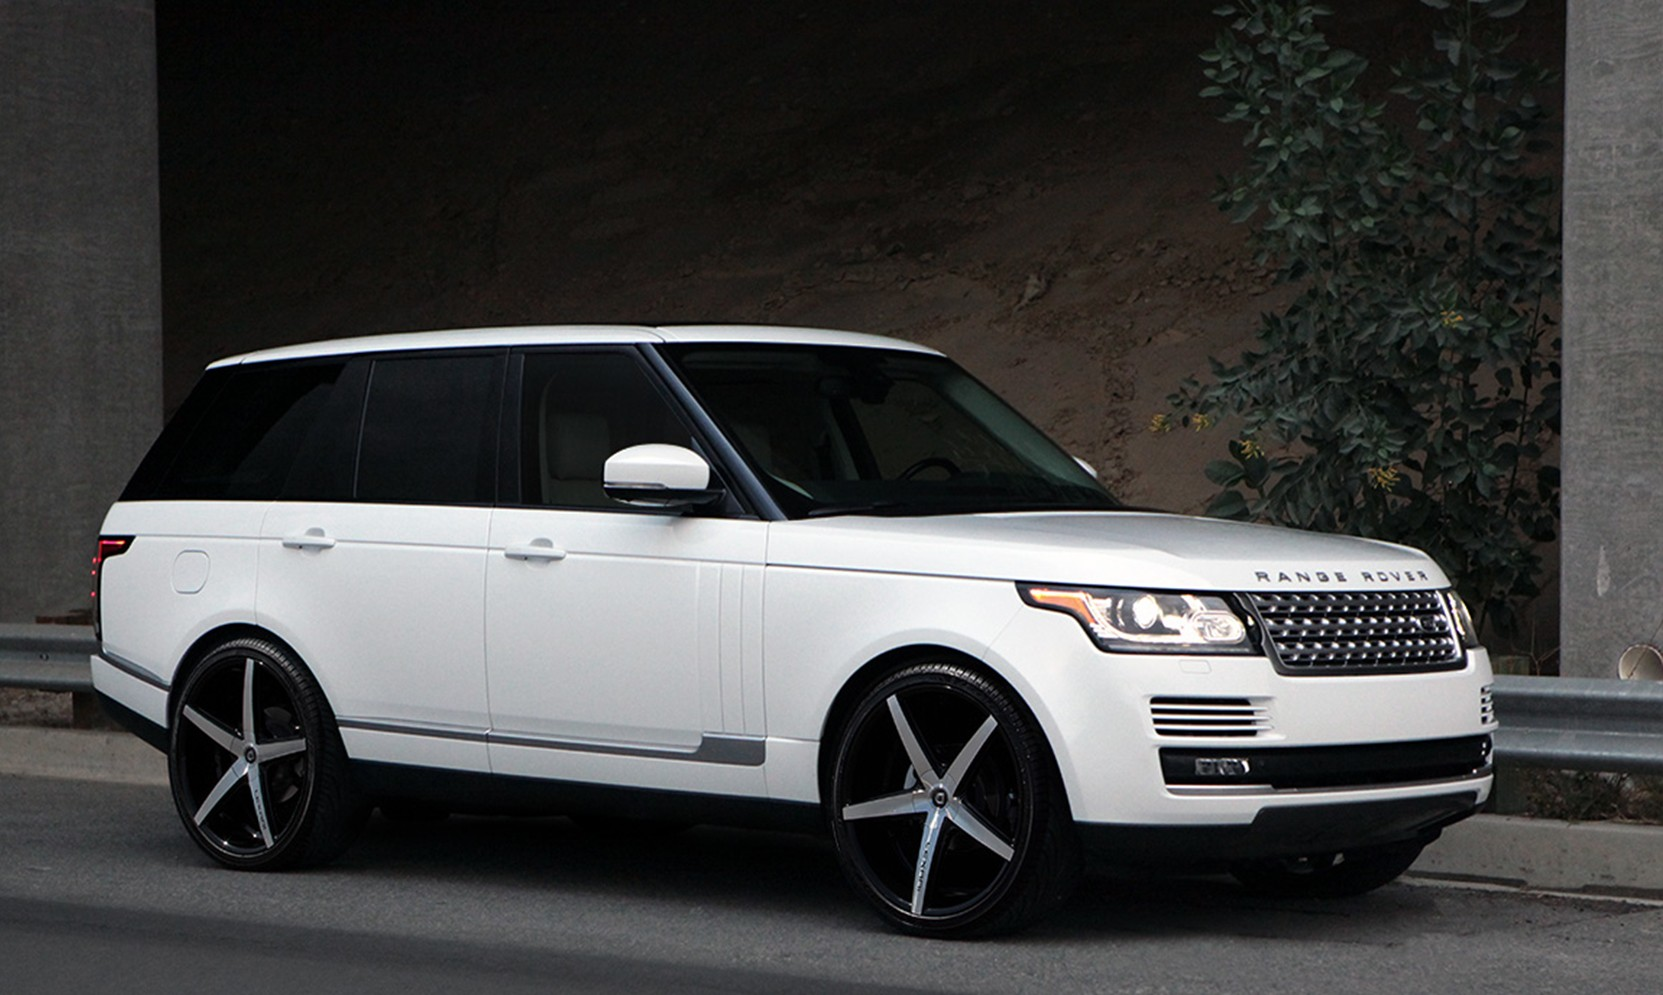 Machine R-Four on Range Rover